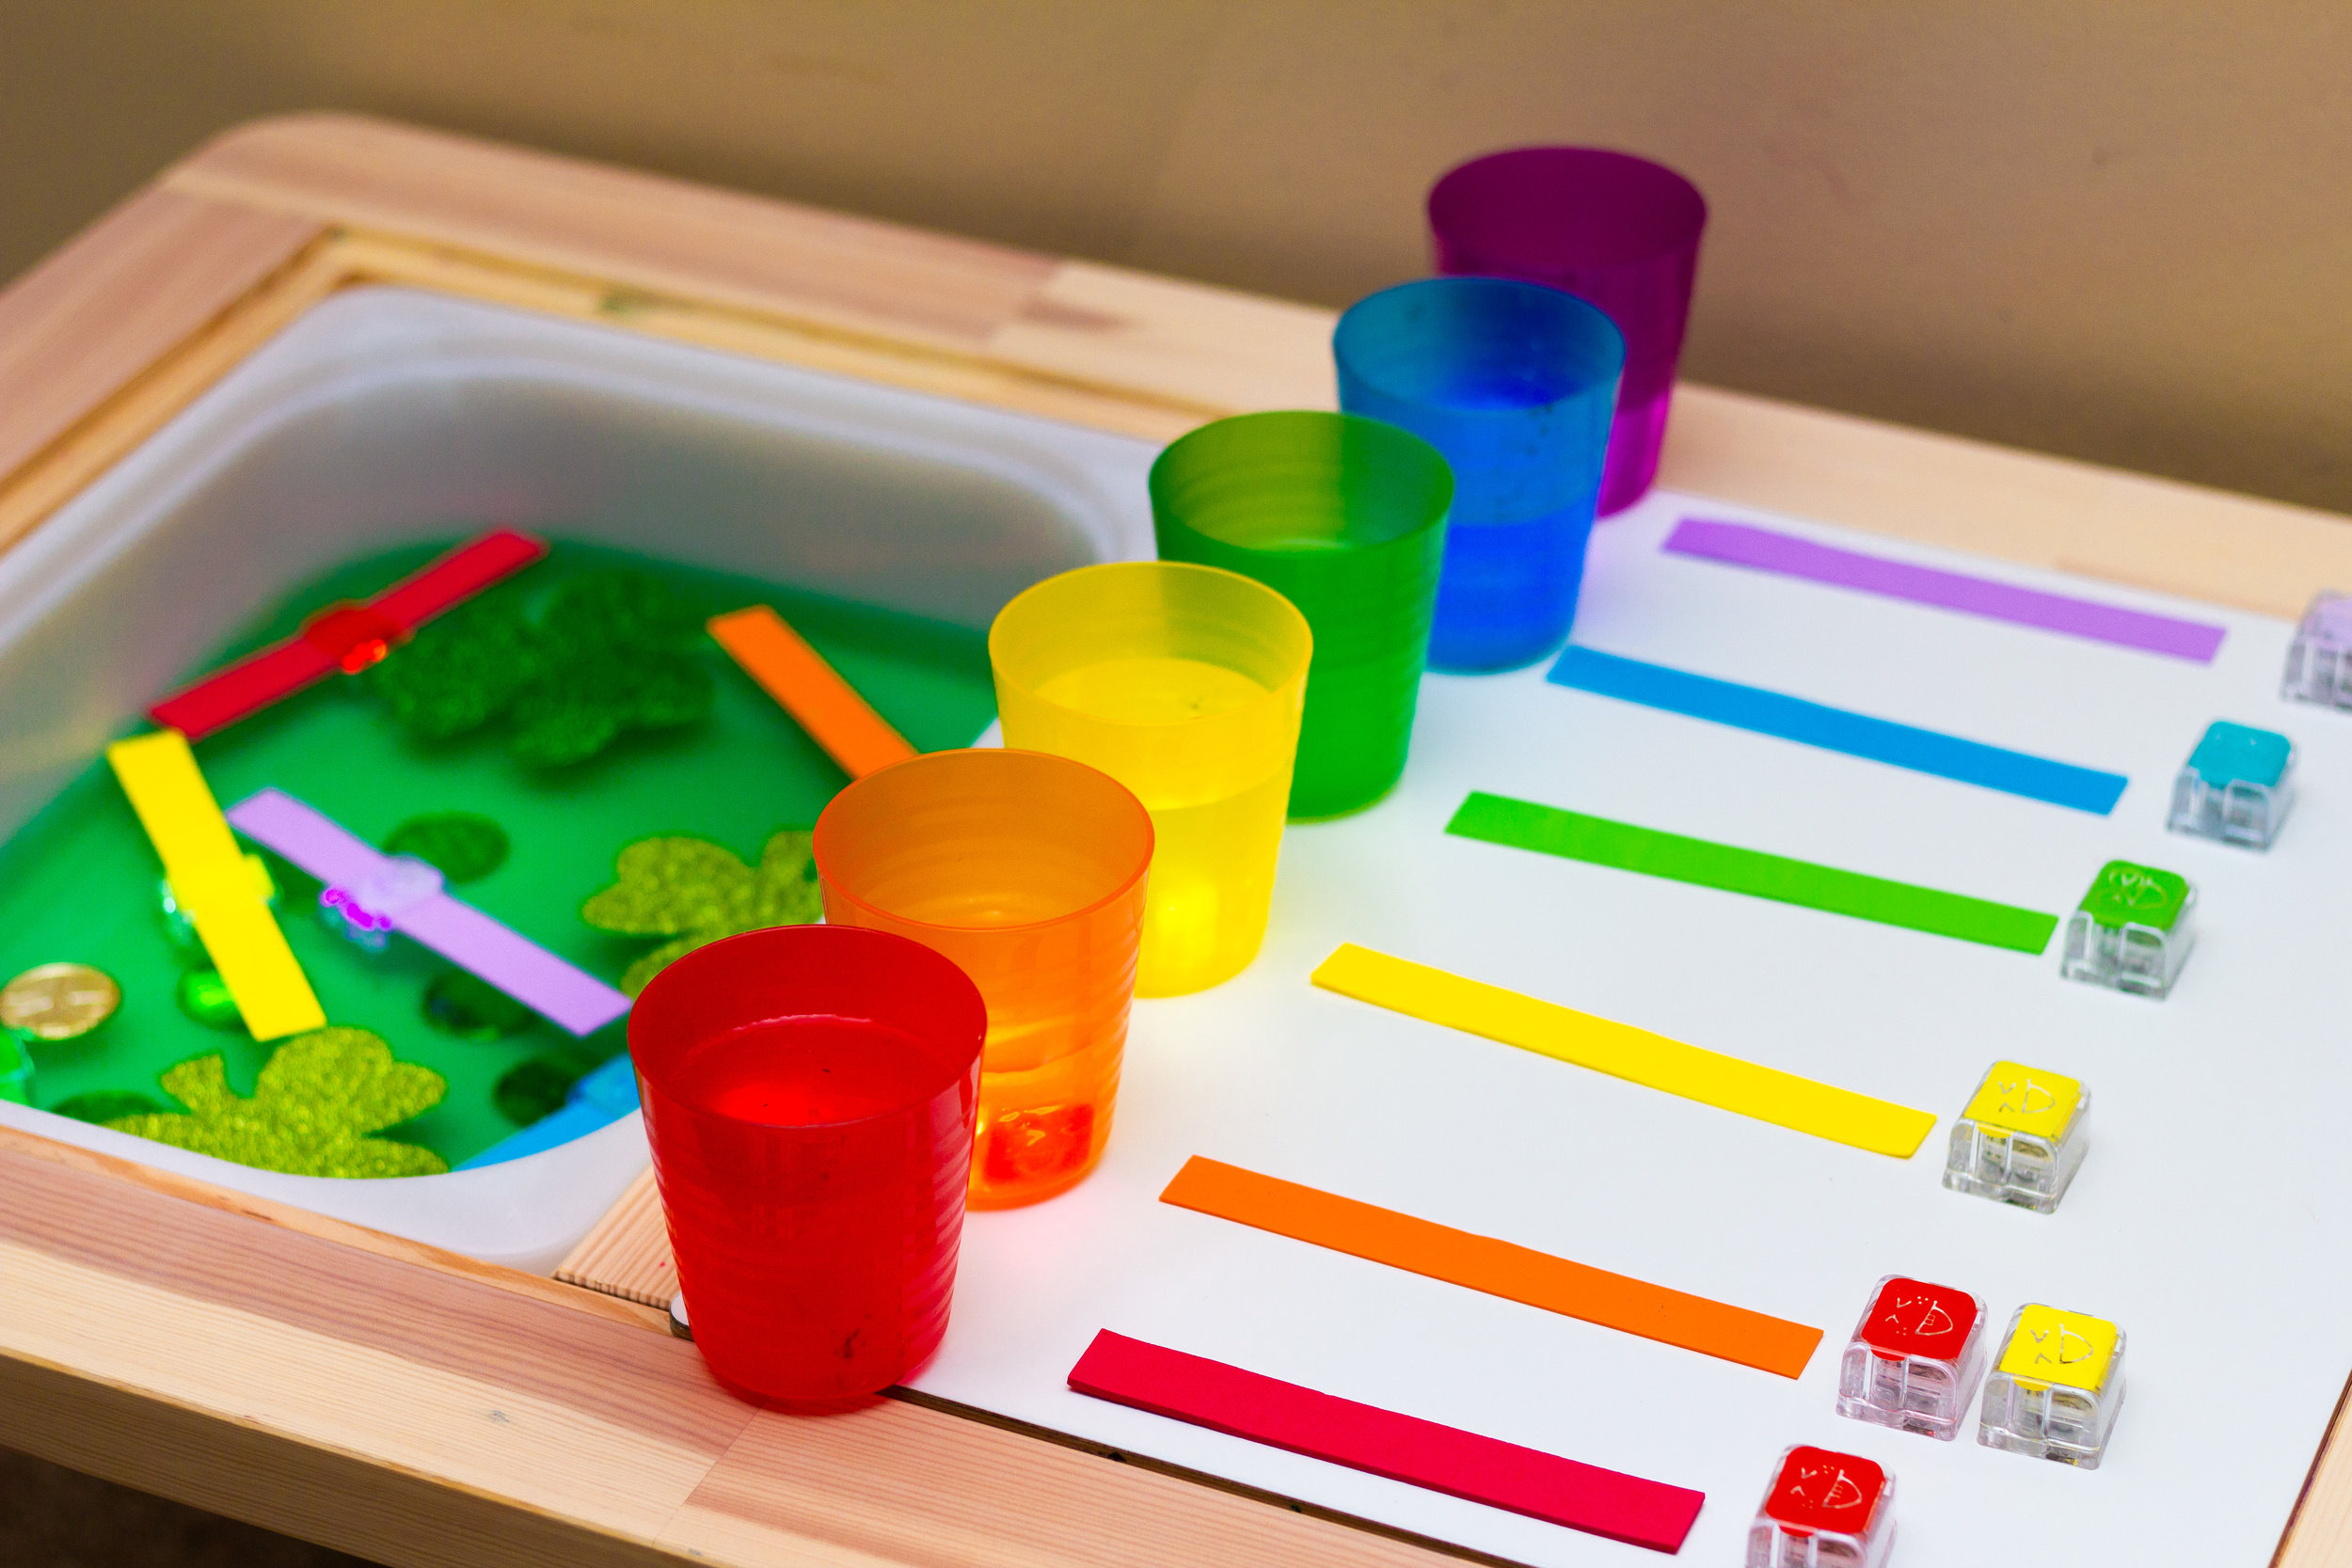 ROYGBIV - Set color cups up by order in the Rainbow - Red, Orange, Yellow, Green, Blue/Indigo, Violet